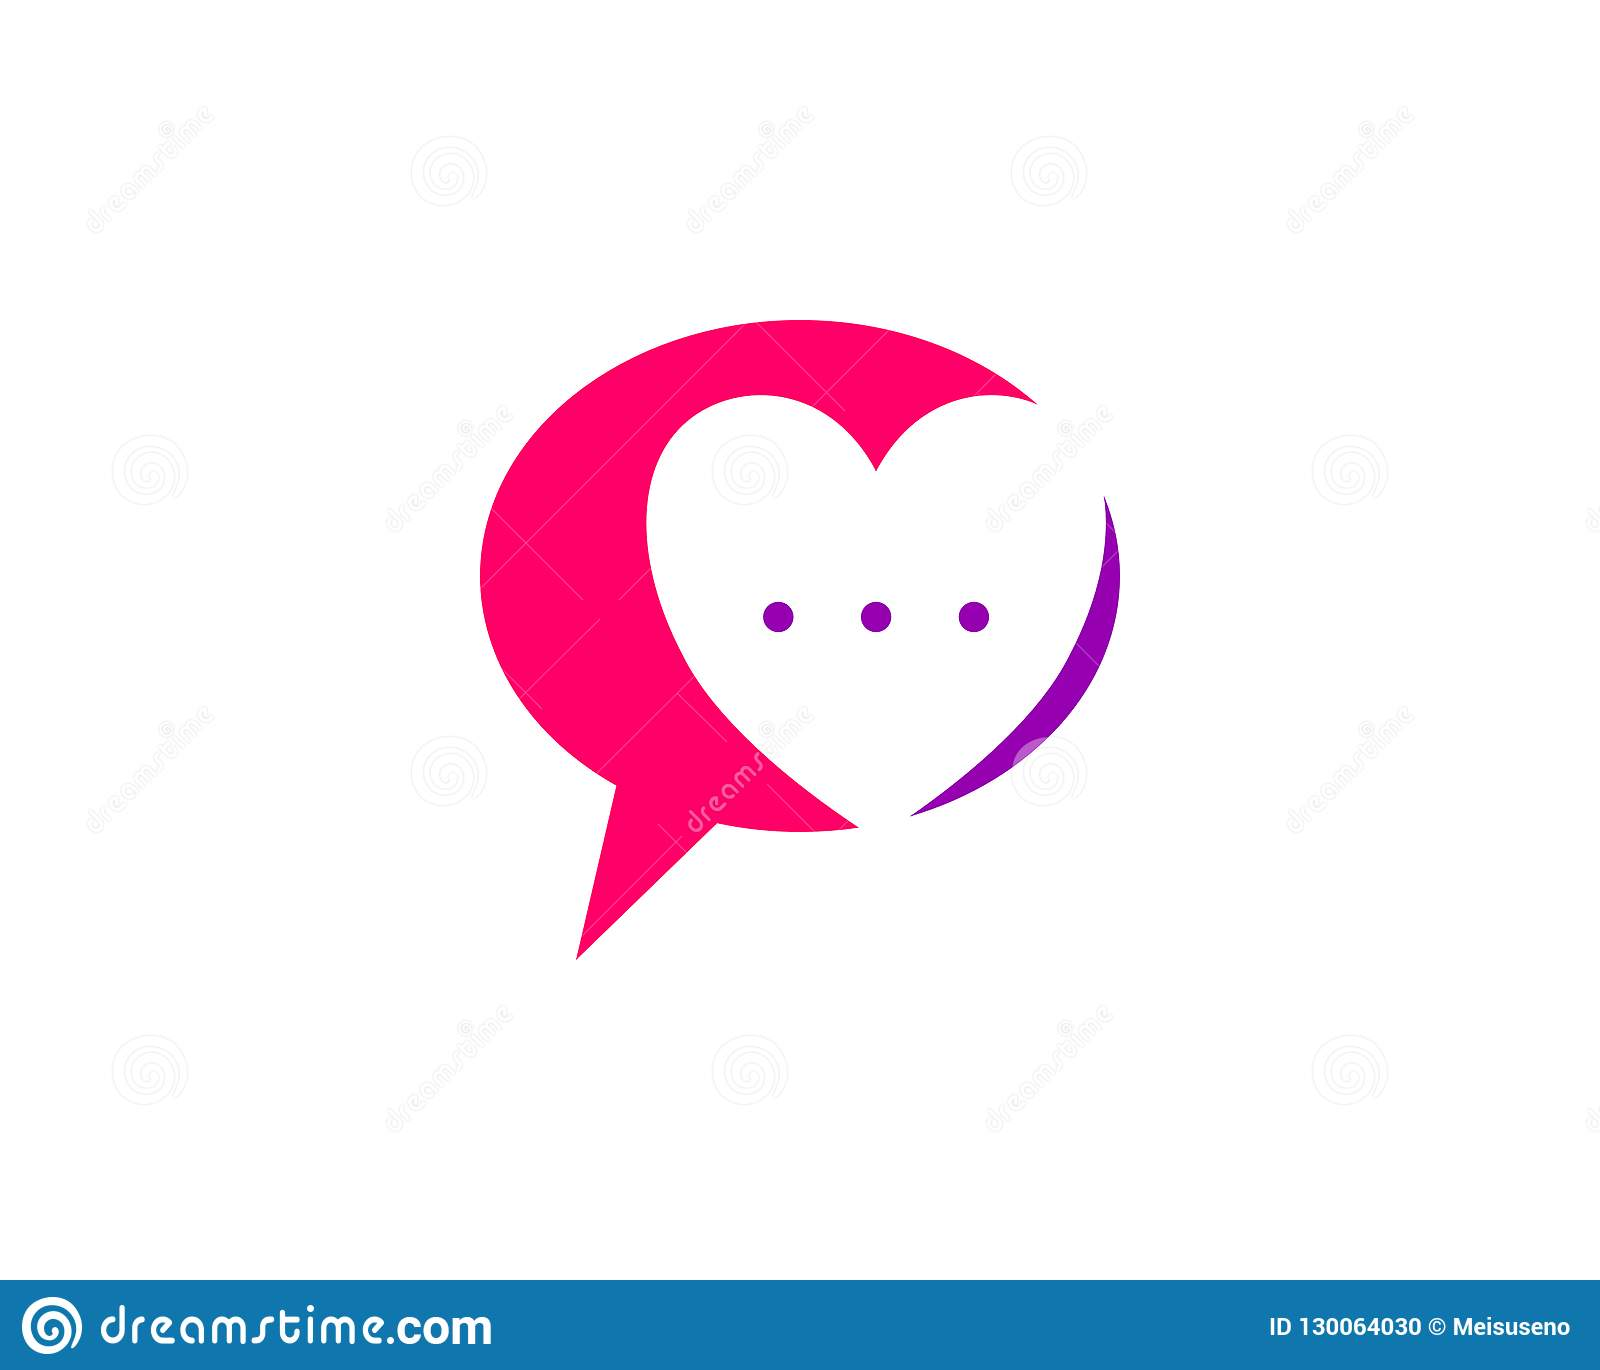 find love chat